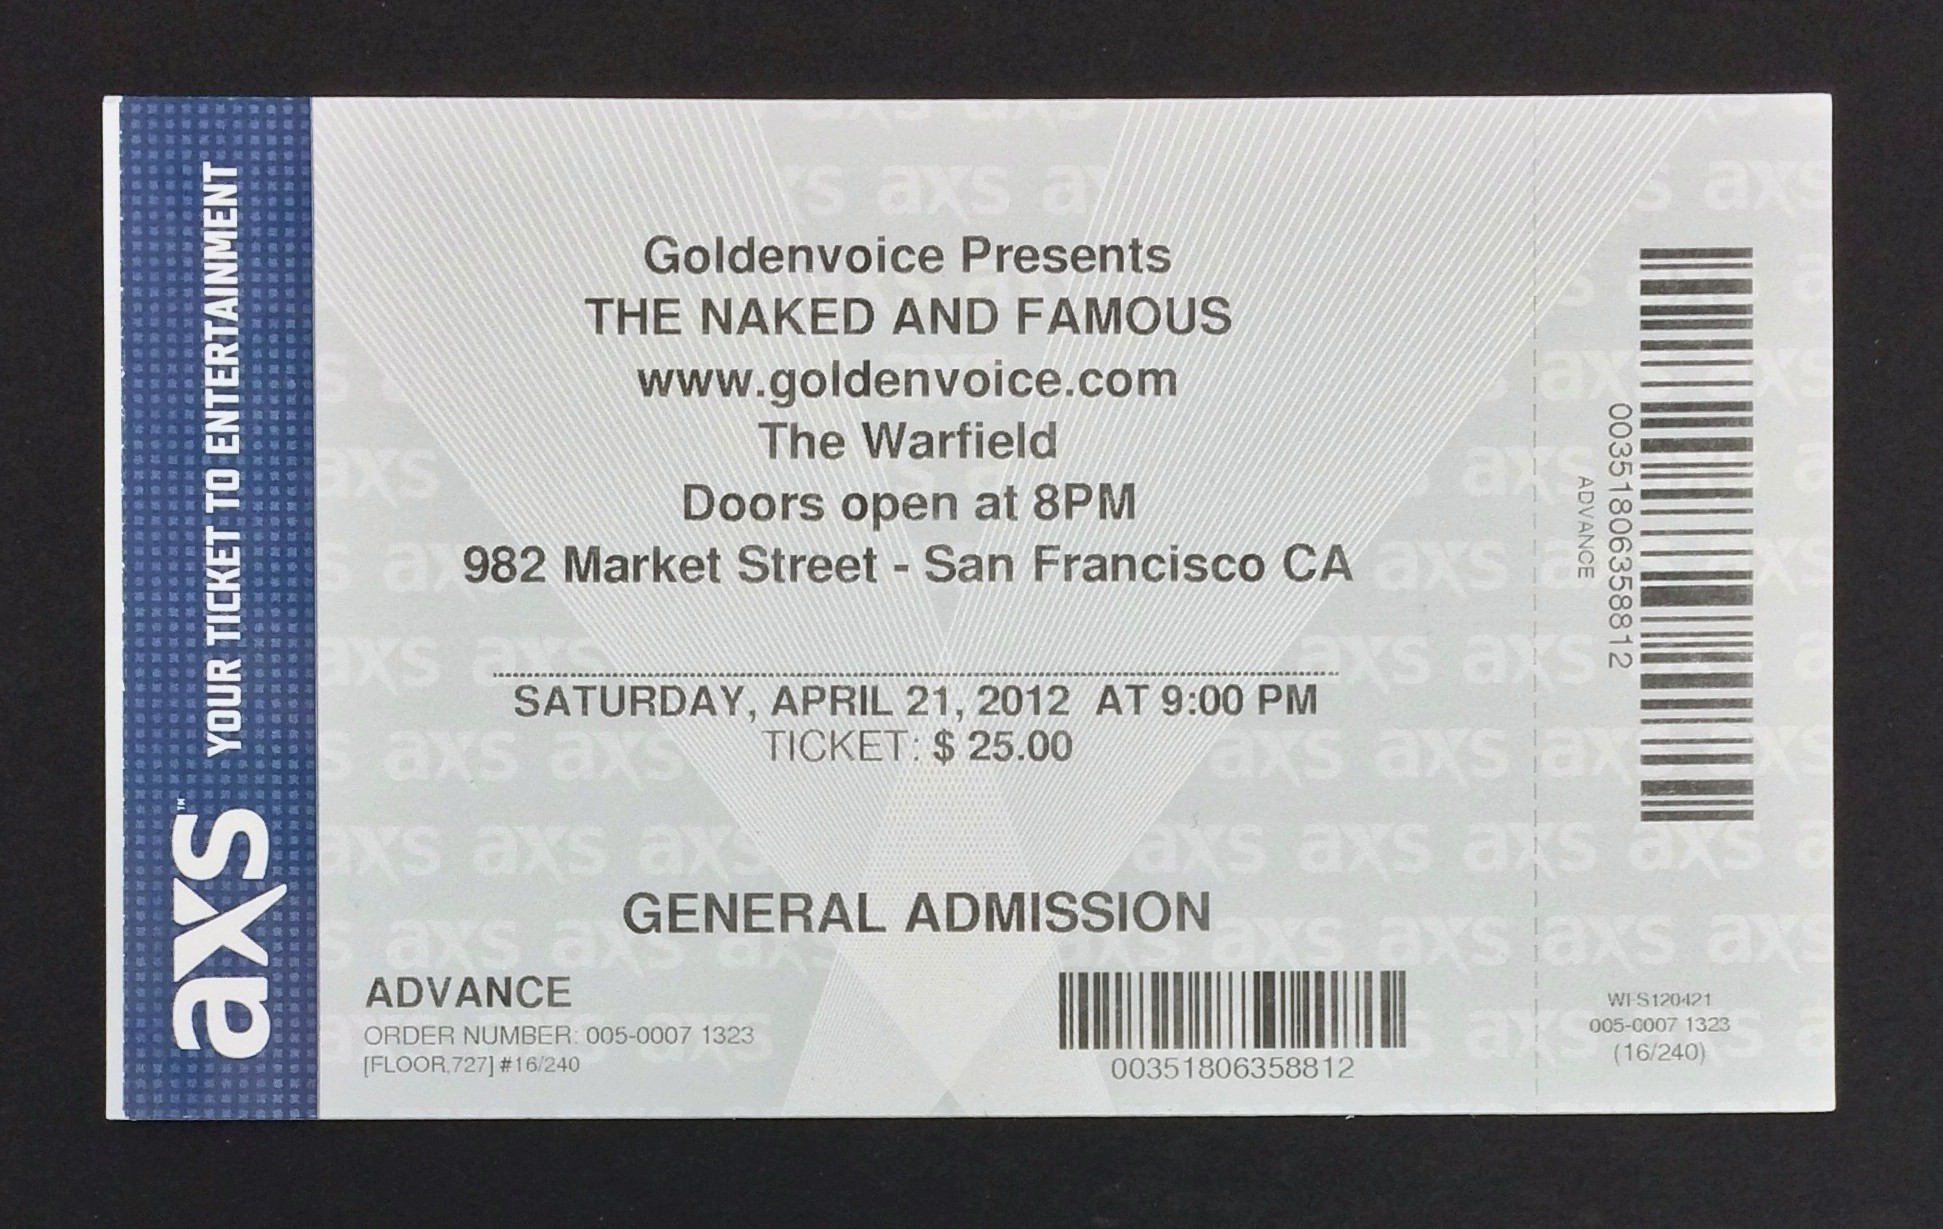 This ticket uses proportionally spaced fonts; no horrible kerning that you get from monospaced fonts. This was my first concert ticket, set in Helvetica.